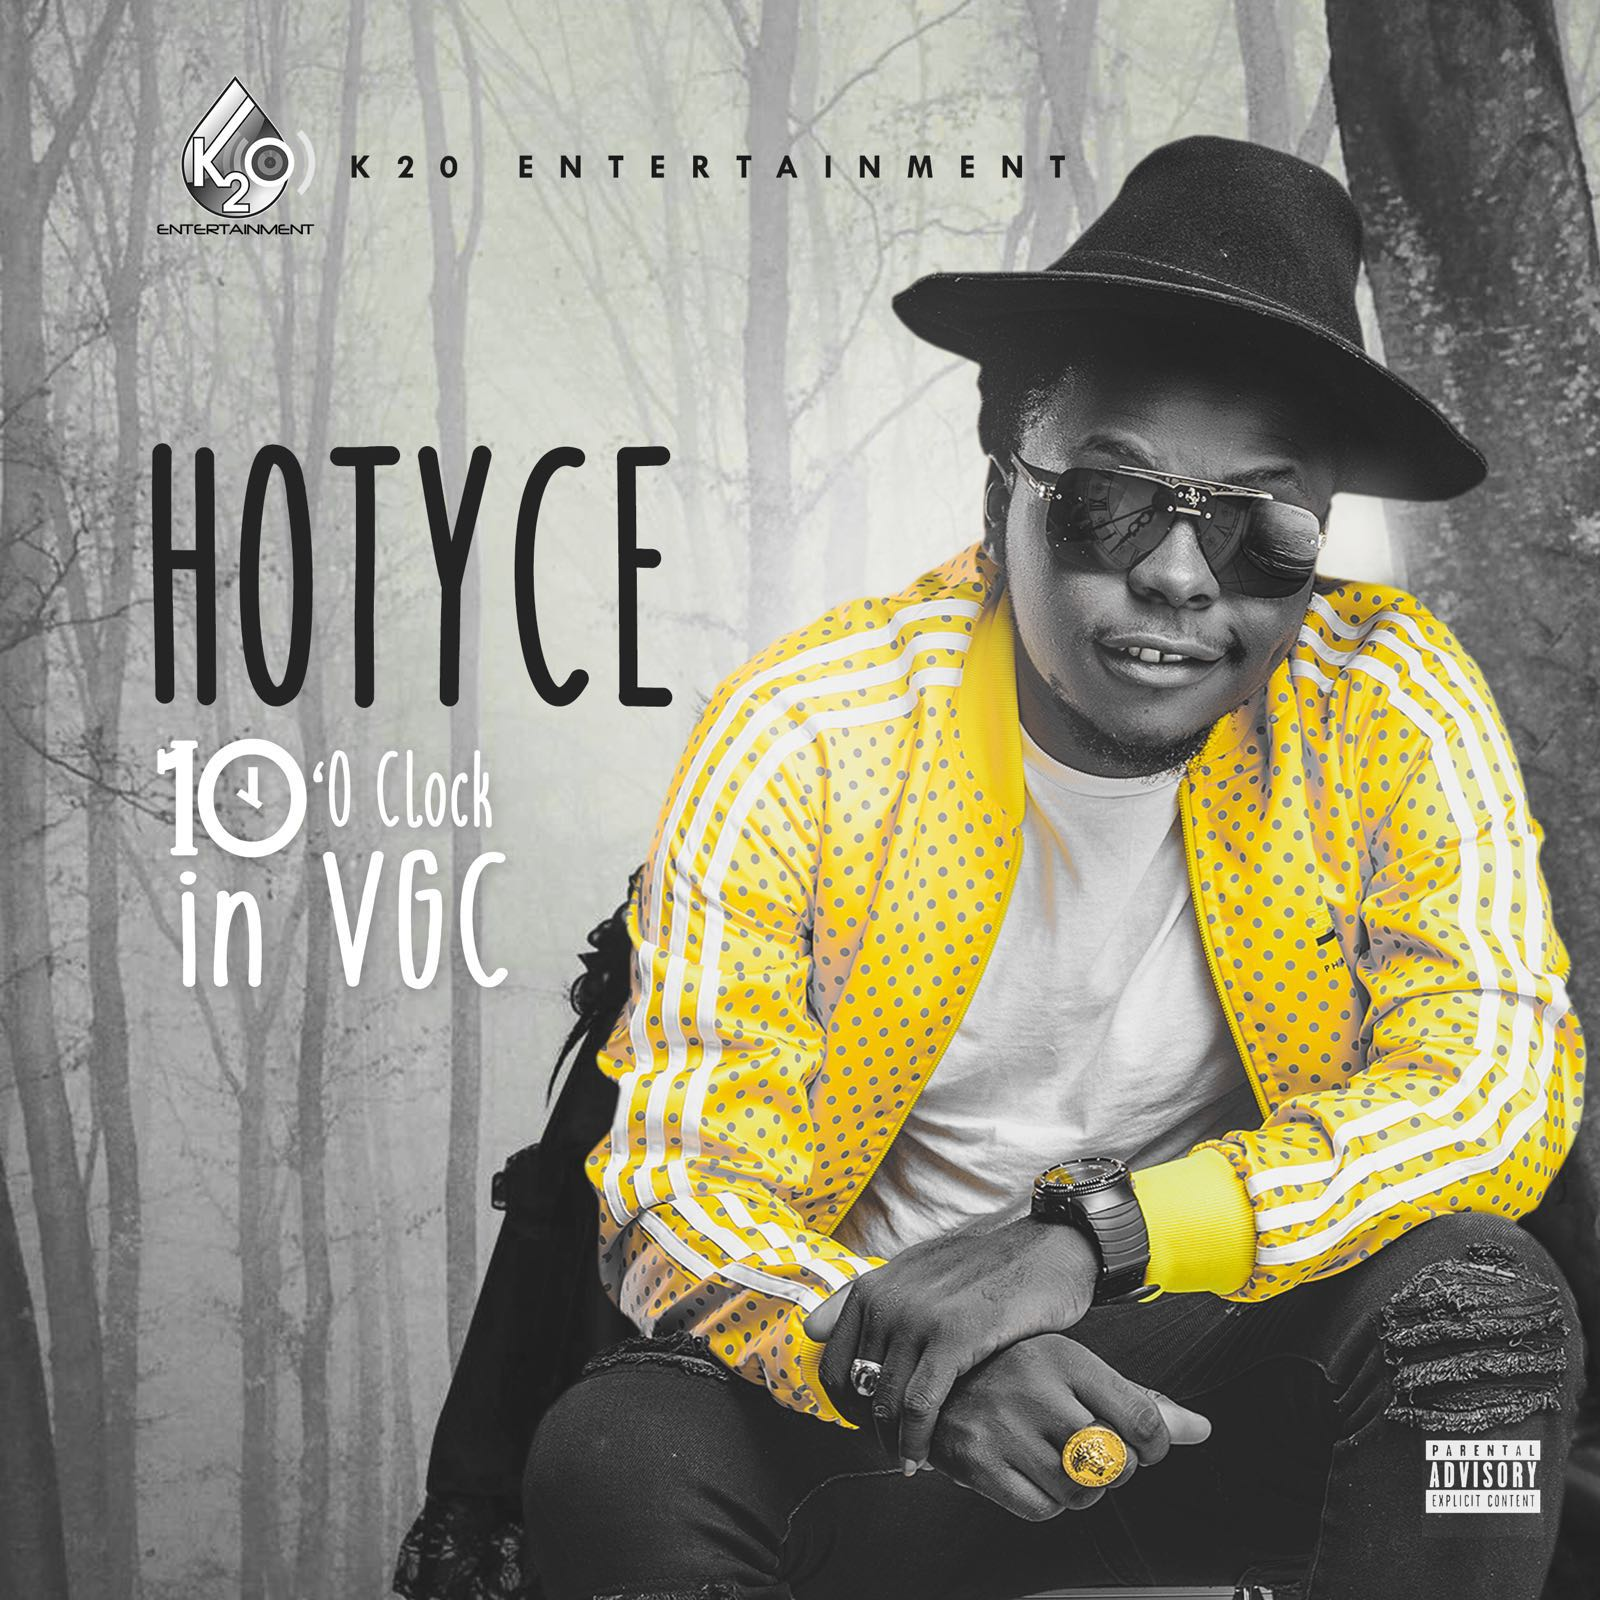 Hotyce – 10 O' Clock in VGC